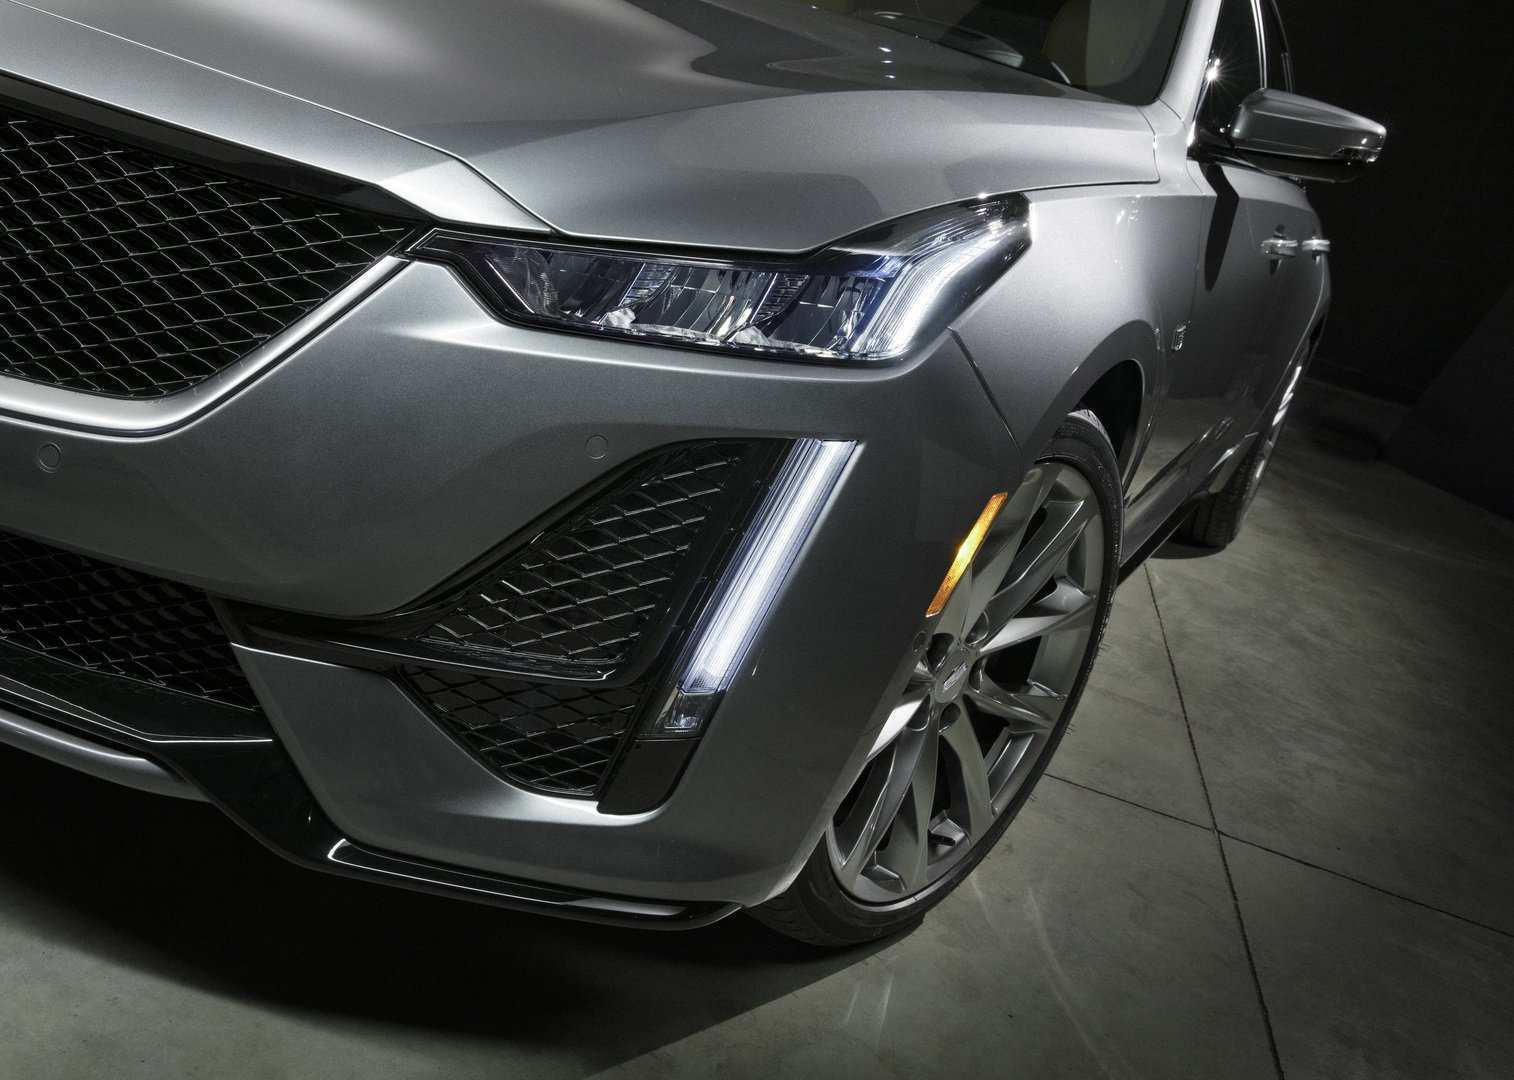 53 All New 2019 Cadillac Ct4 Exterior And Interior